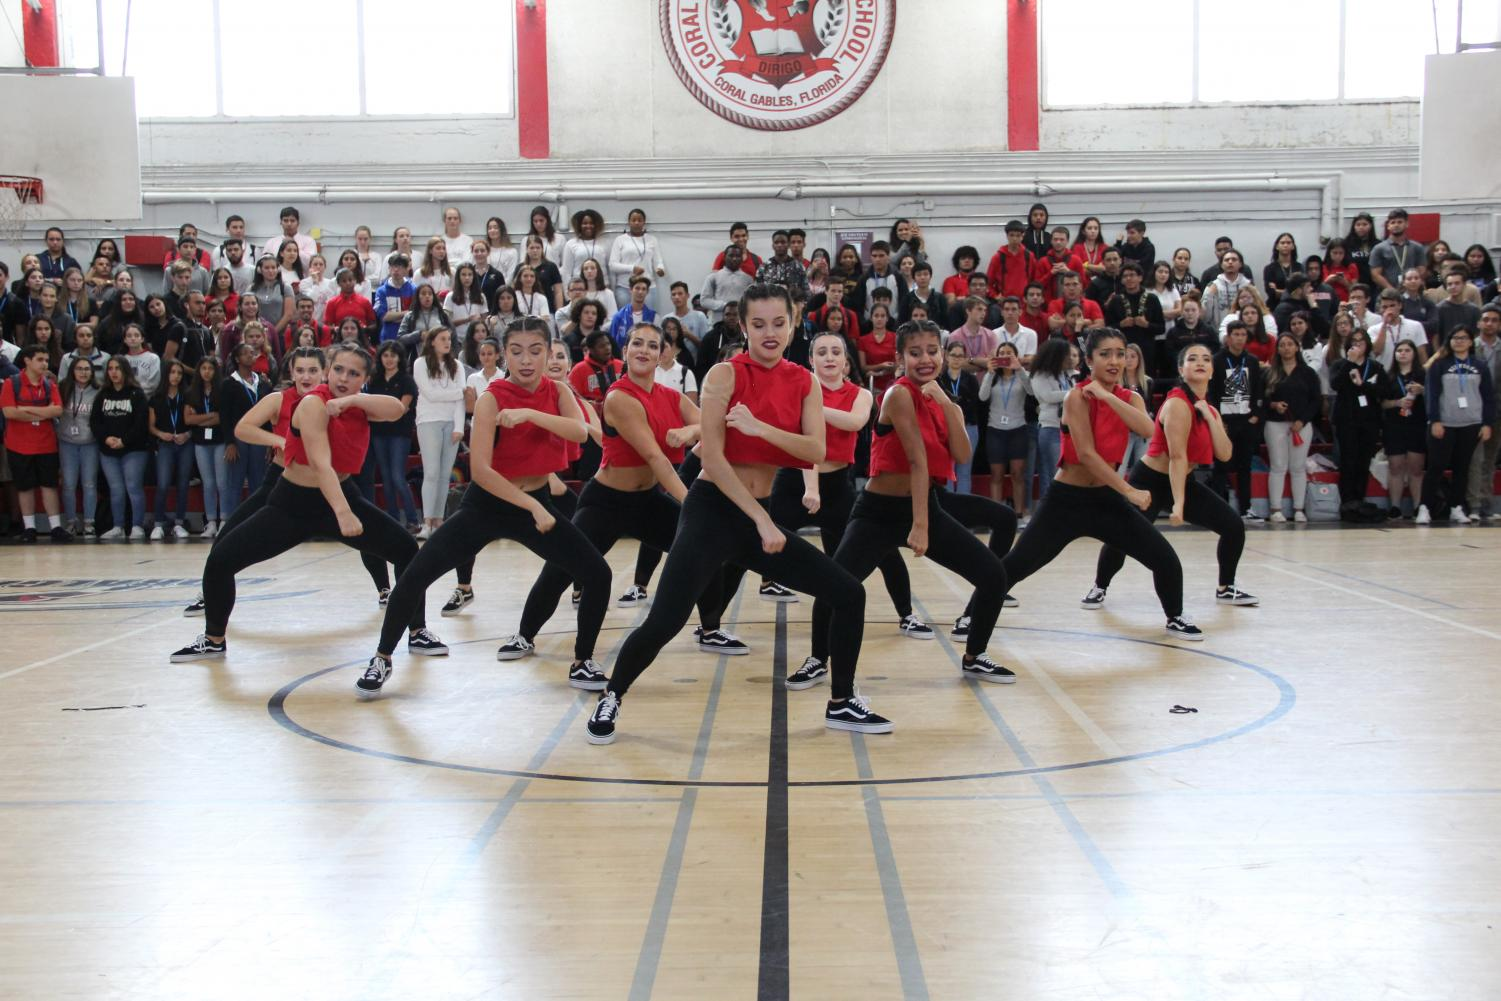 Gables%27+very+own+Gablettes+dance+team+gave+a+spectacular+performance+at+the+Alma+Mater+pep+rally.+++